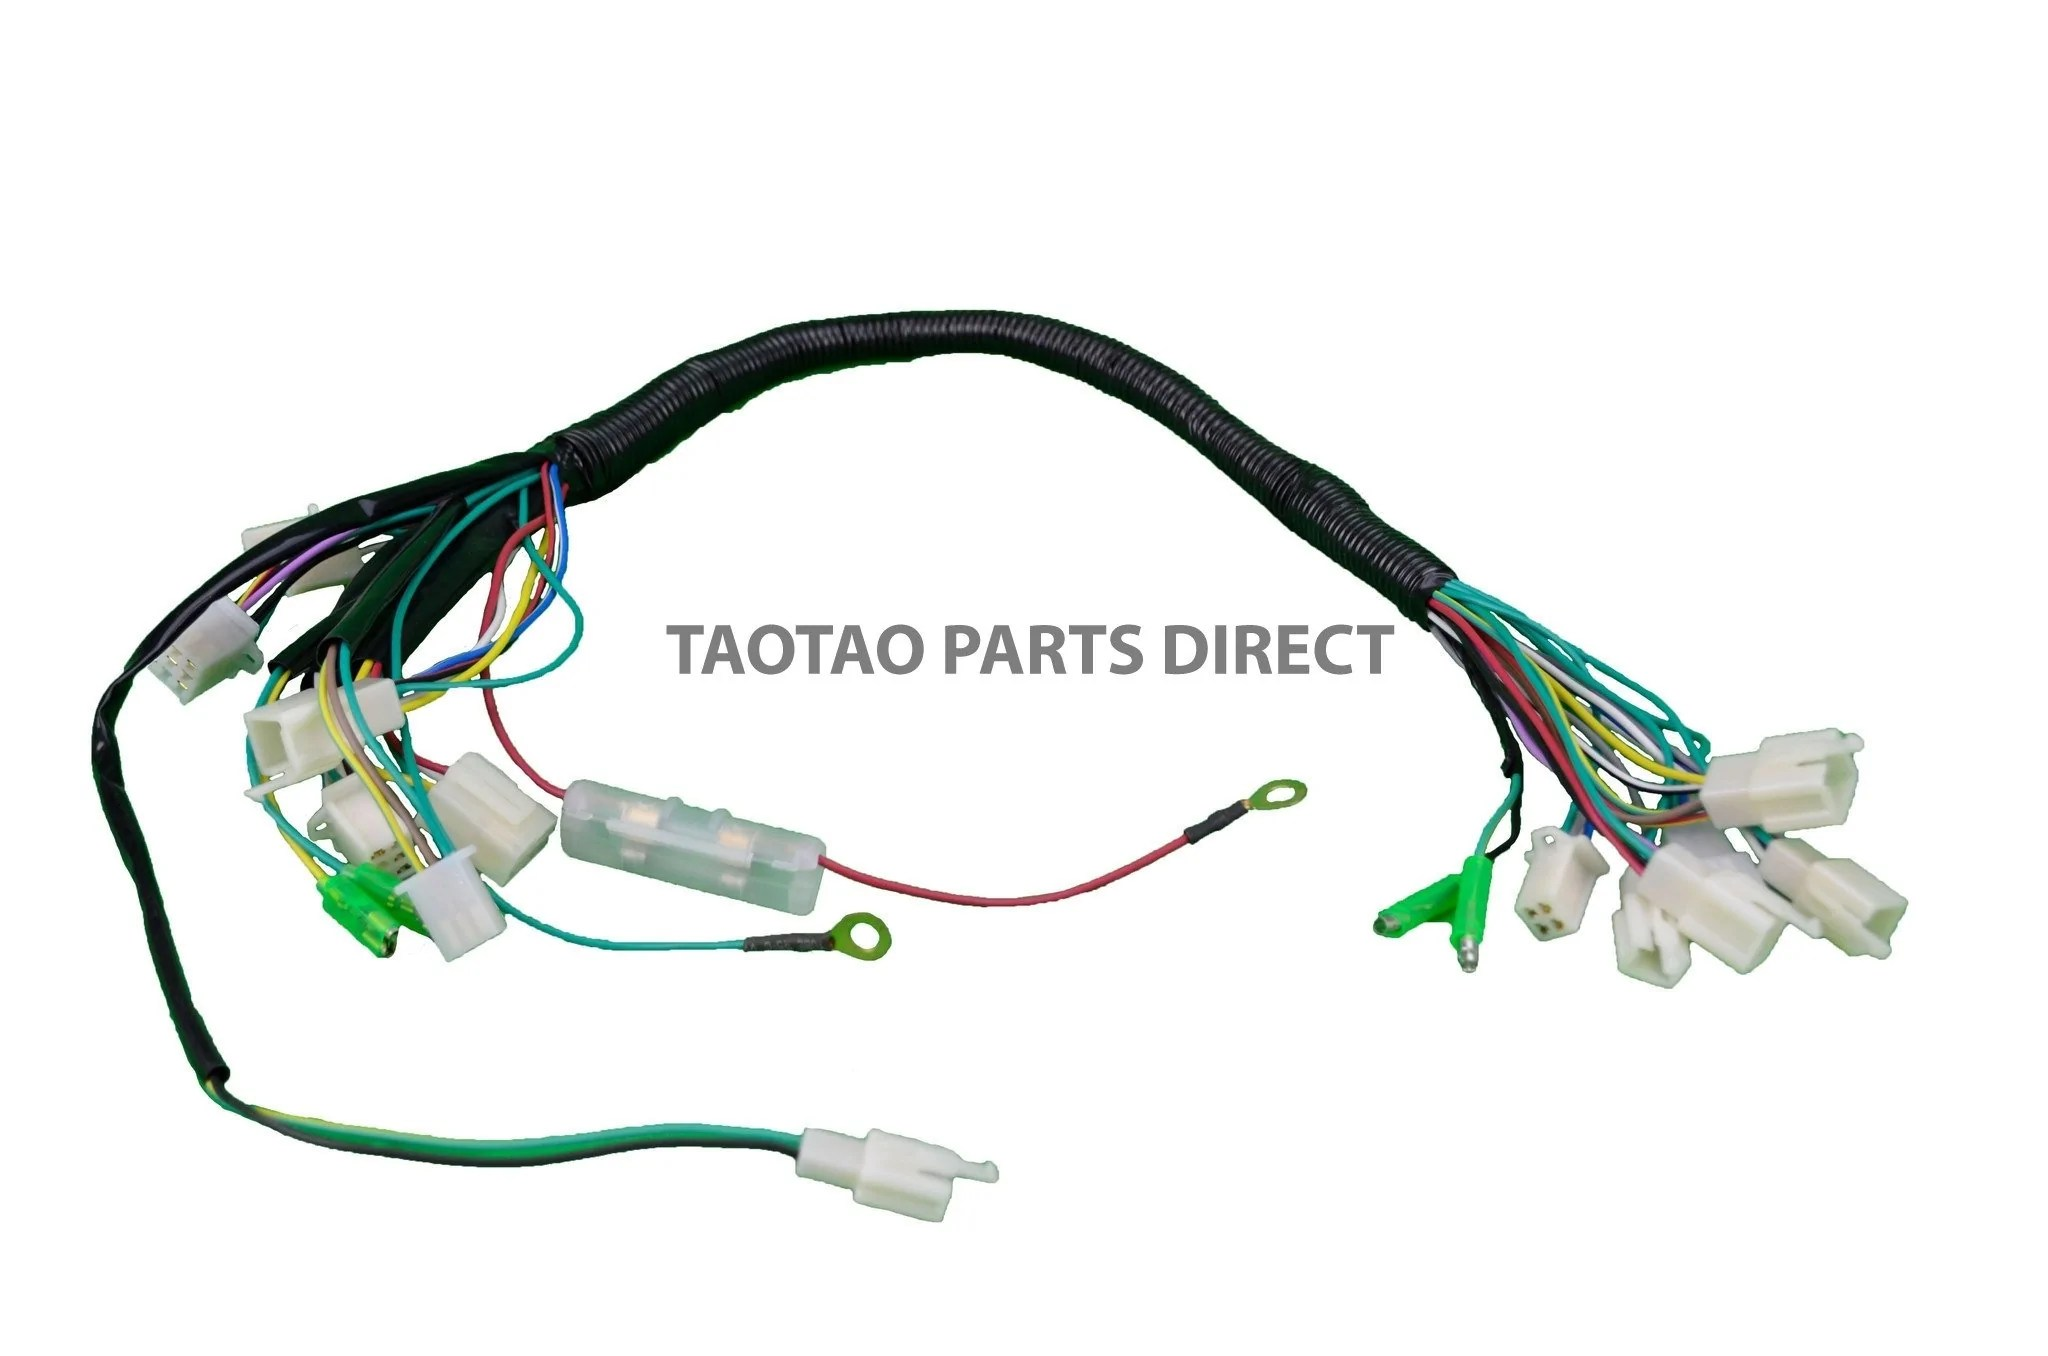 medium resolution of ata110b wire harness 8 taotaopartsdirect com